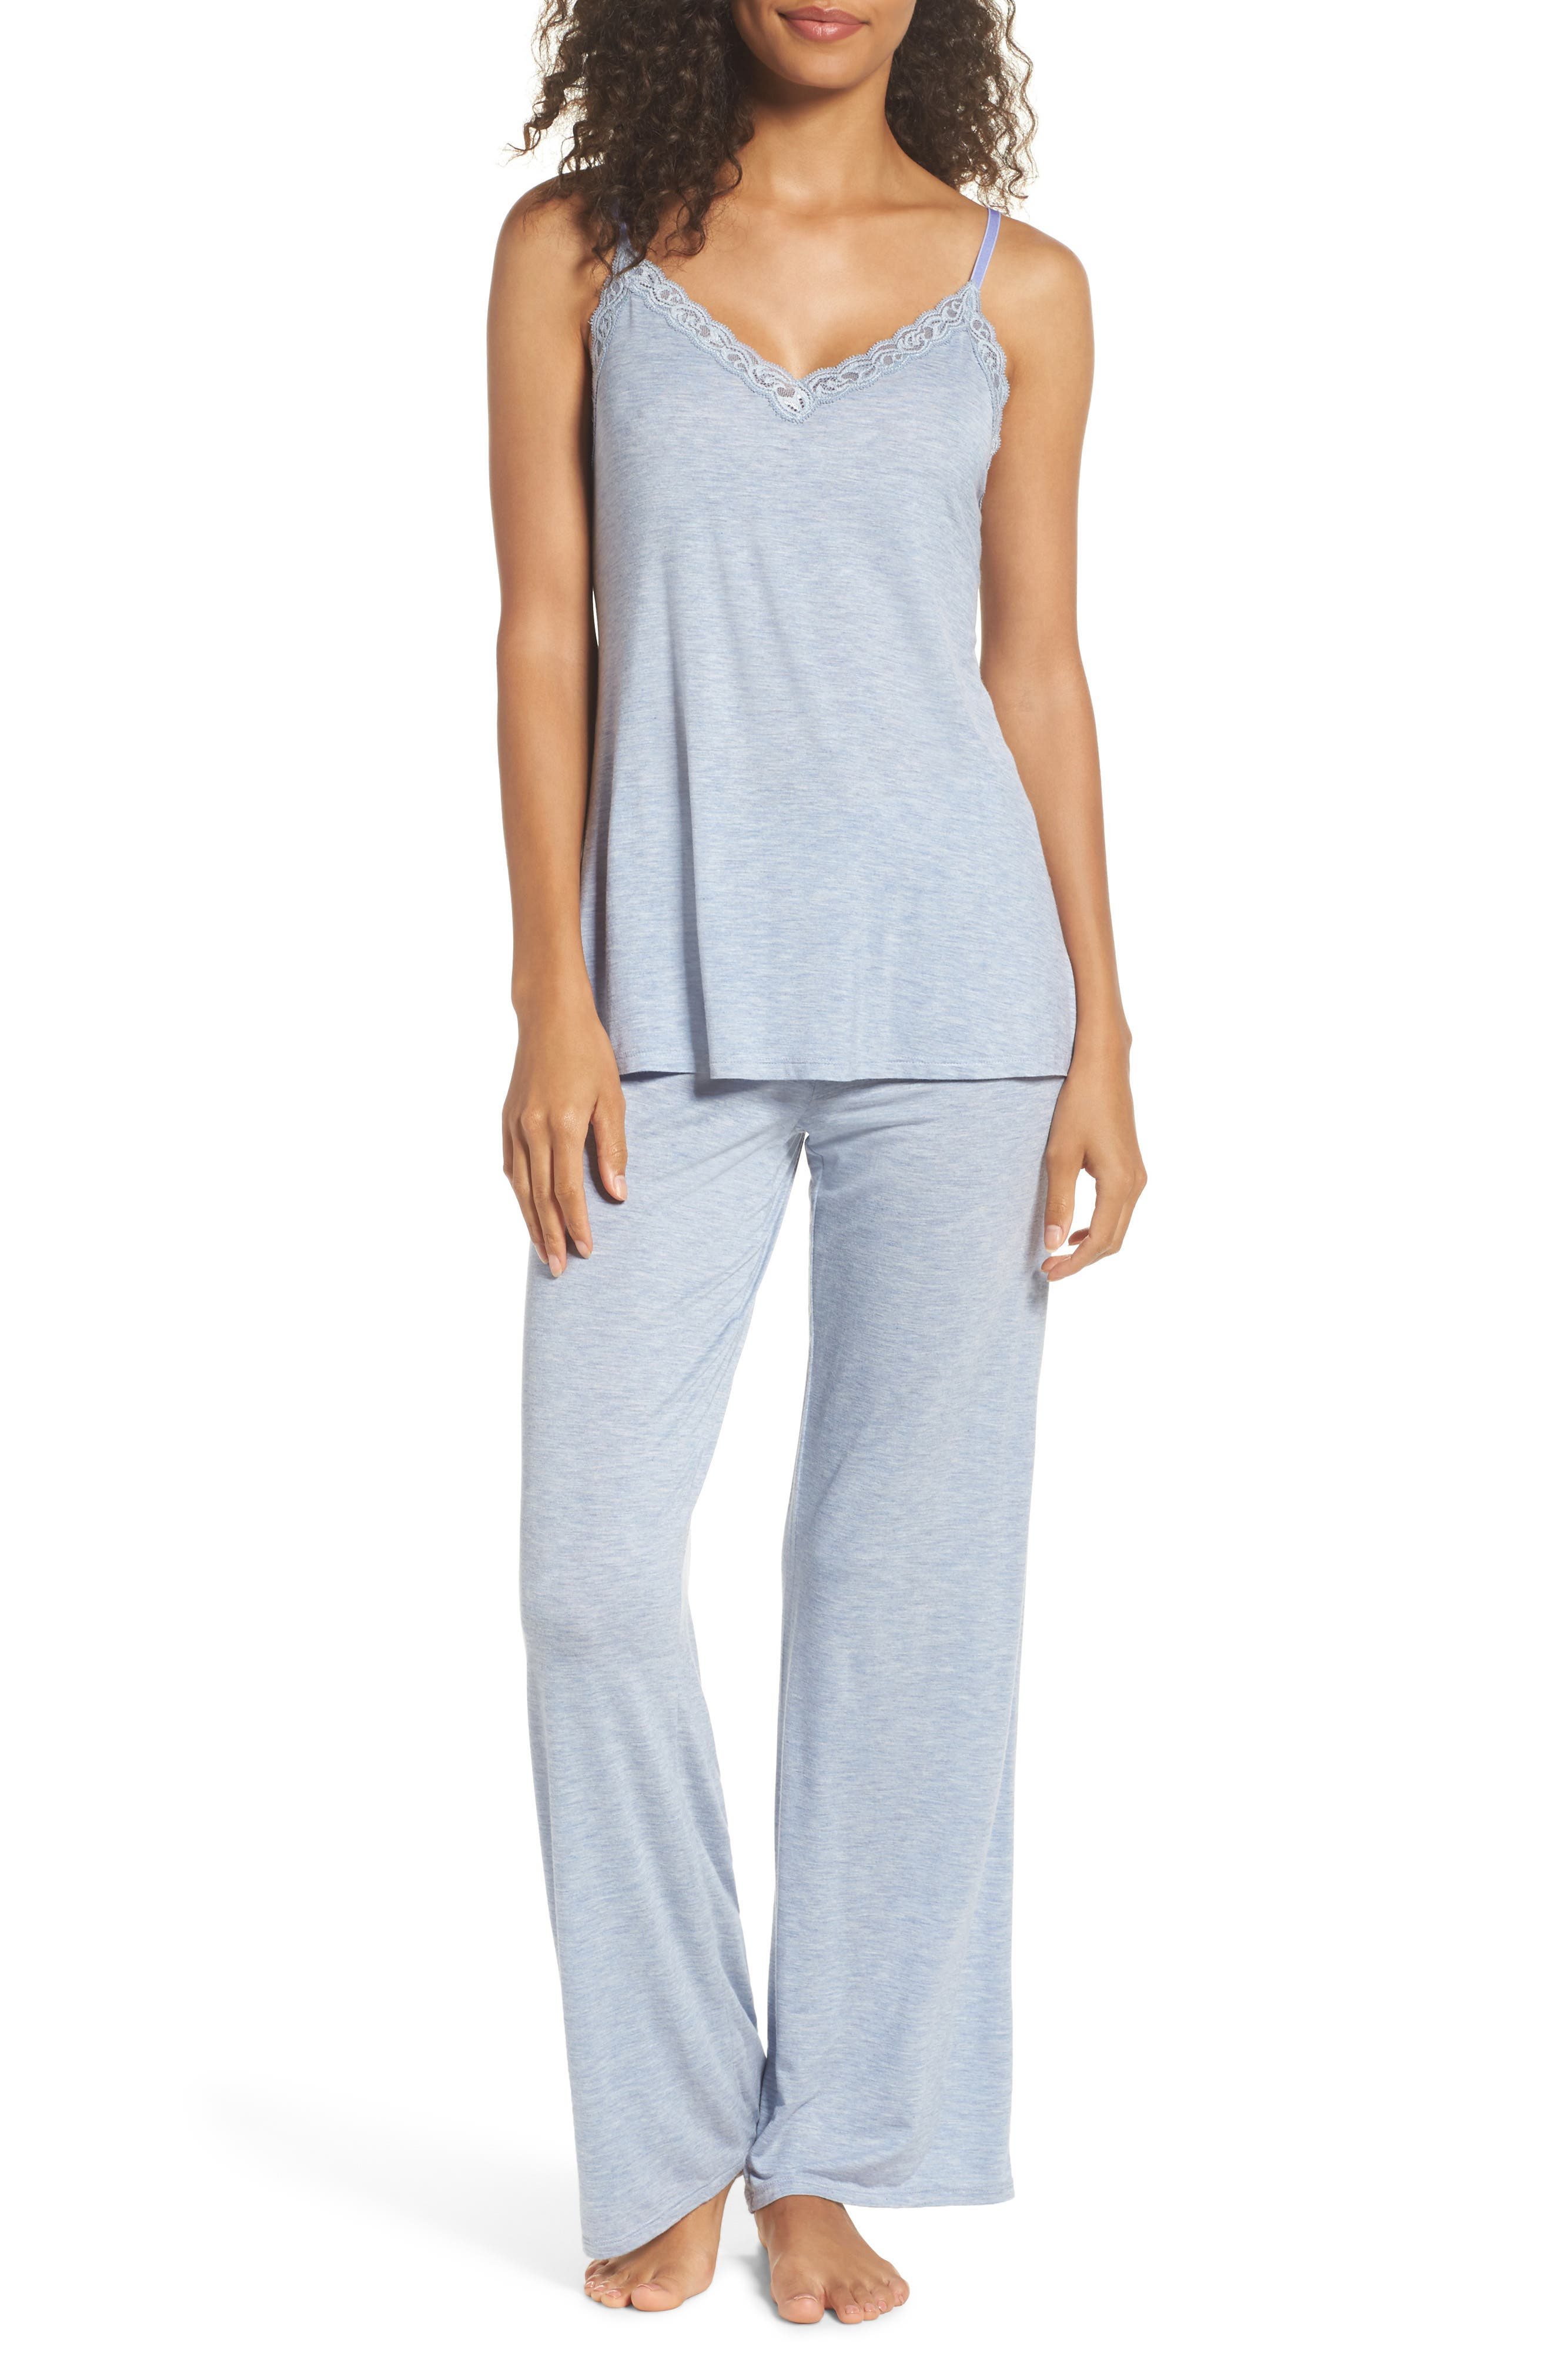 Feather Knit Pajamas,                         Main,                         color, Ink